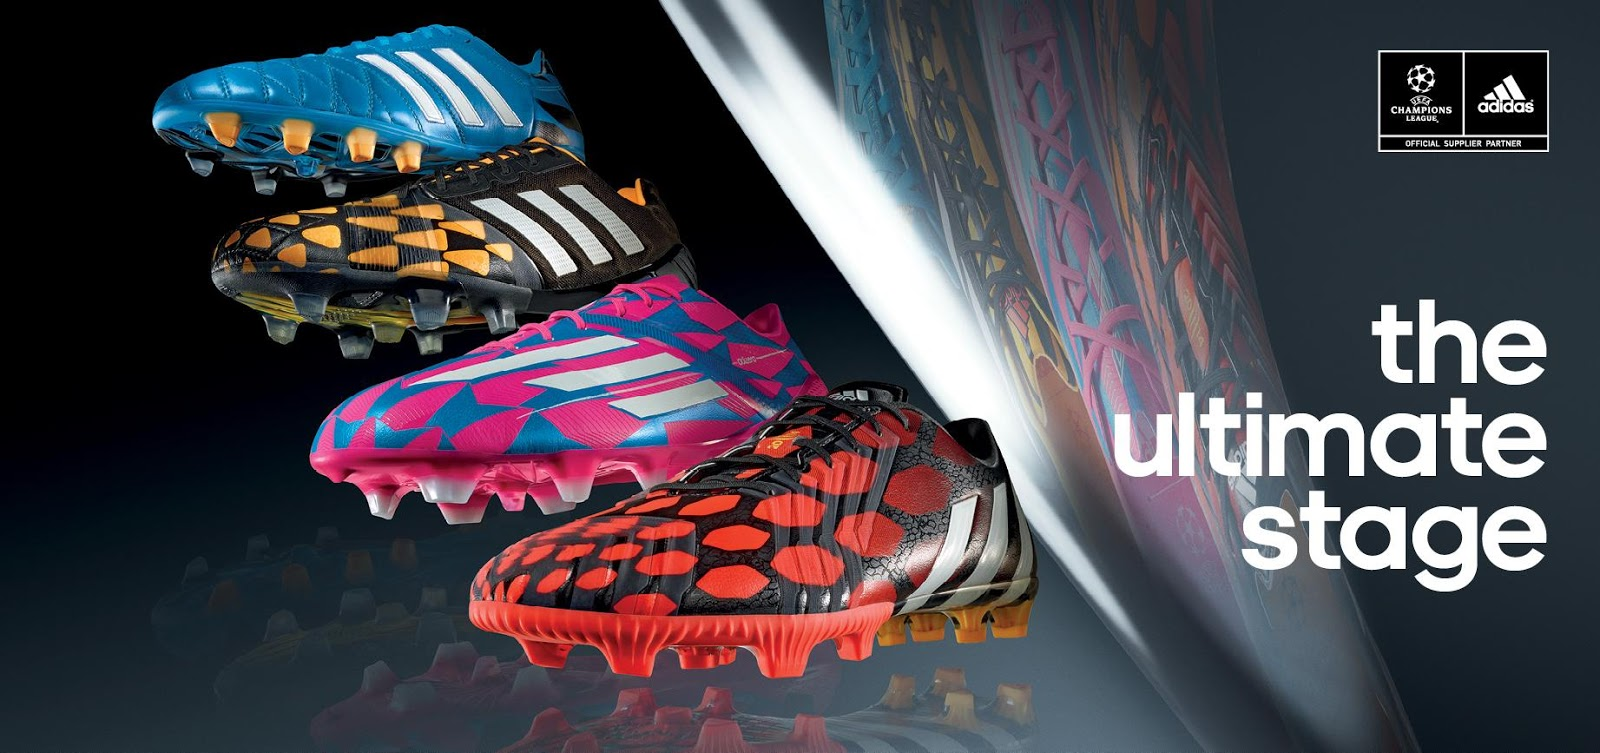 detailed pictures 0f8ae 3af52 ... for the Adizero F50, Predator Instinct, Nitrocharge and Adipure 11pro  Boots, using parts of the well-known Adidas Battle Pack Boot design  patterns.